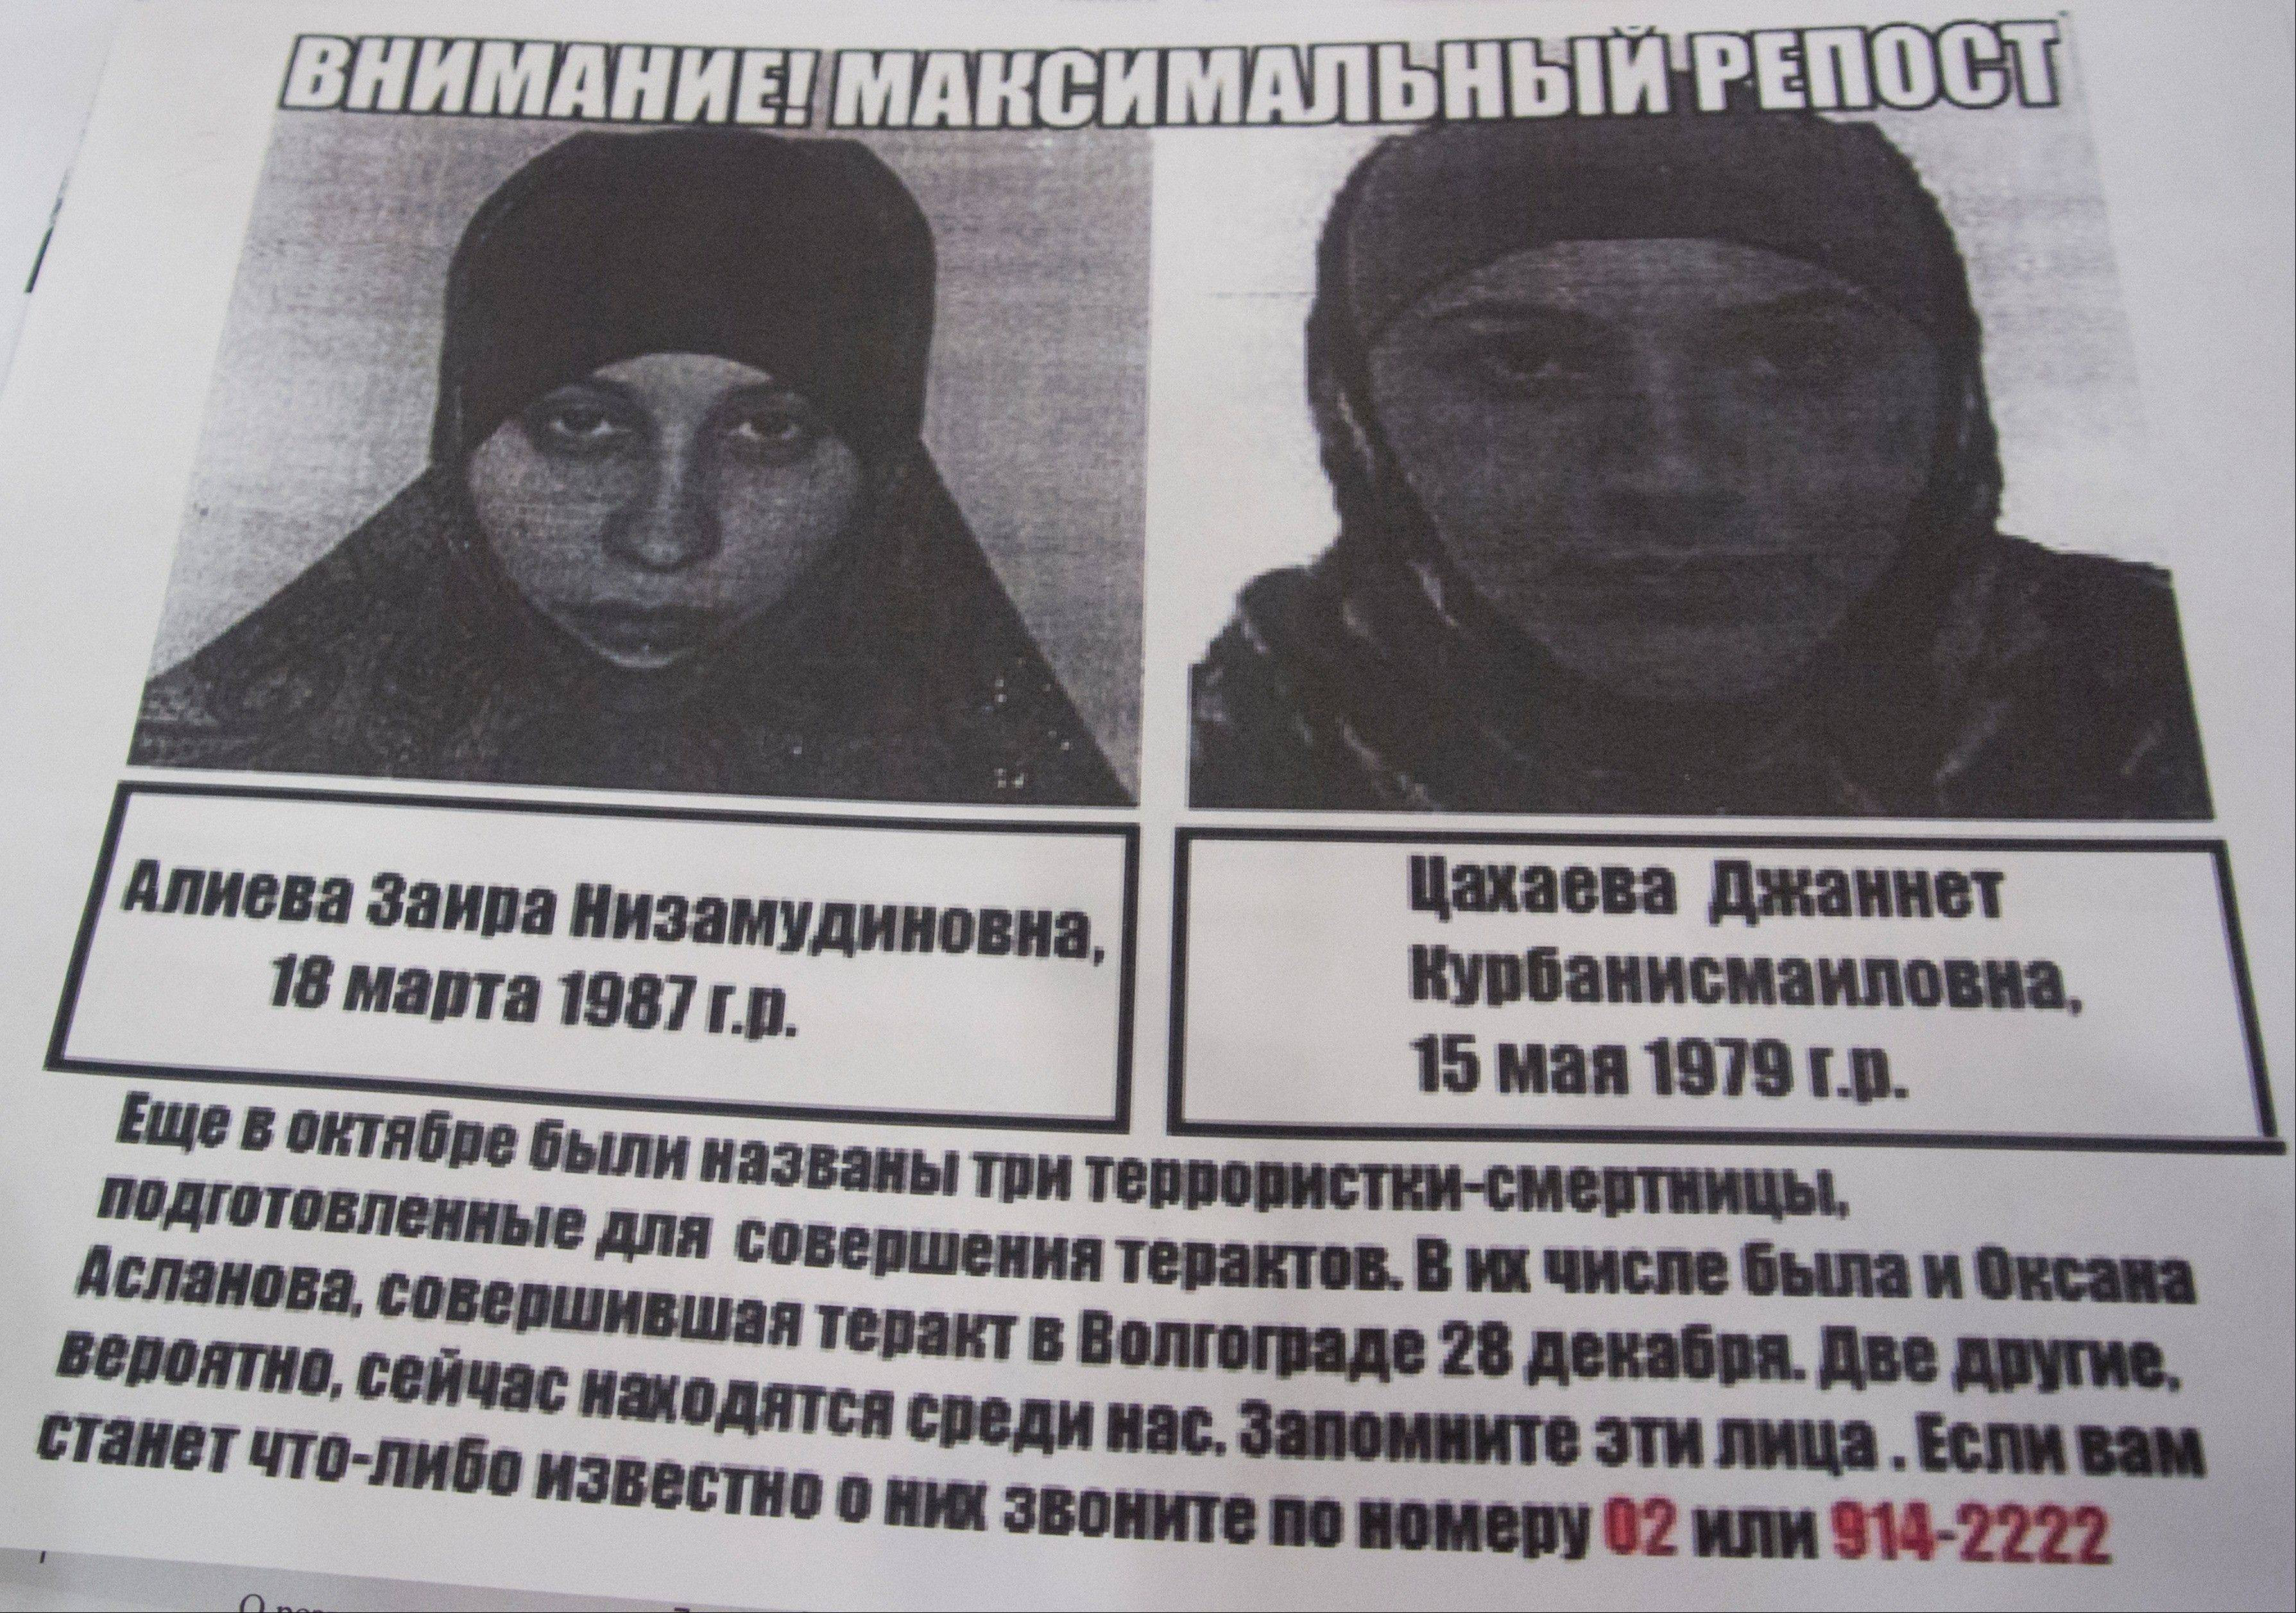 "A photo of a police leaflet seen in a Sochi hotel on Tuesday, Jan. 21, 2014, depicting Dzhannet Tsakhayeva, right, and Zaira Aliyeva. The leaflet reads: ""Please remember those faces, terrorists may be among us now. If you happen to know anything about them please call 02 ...""."